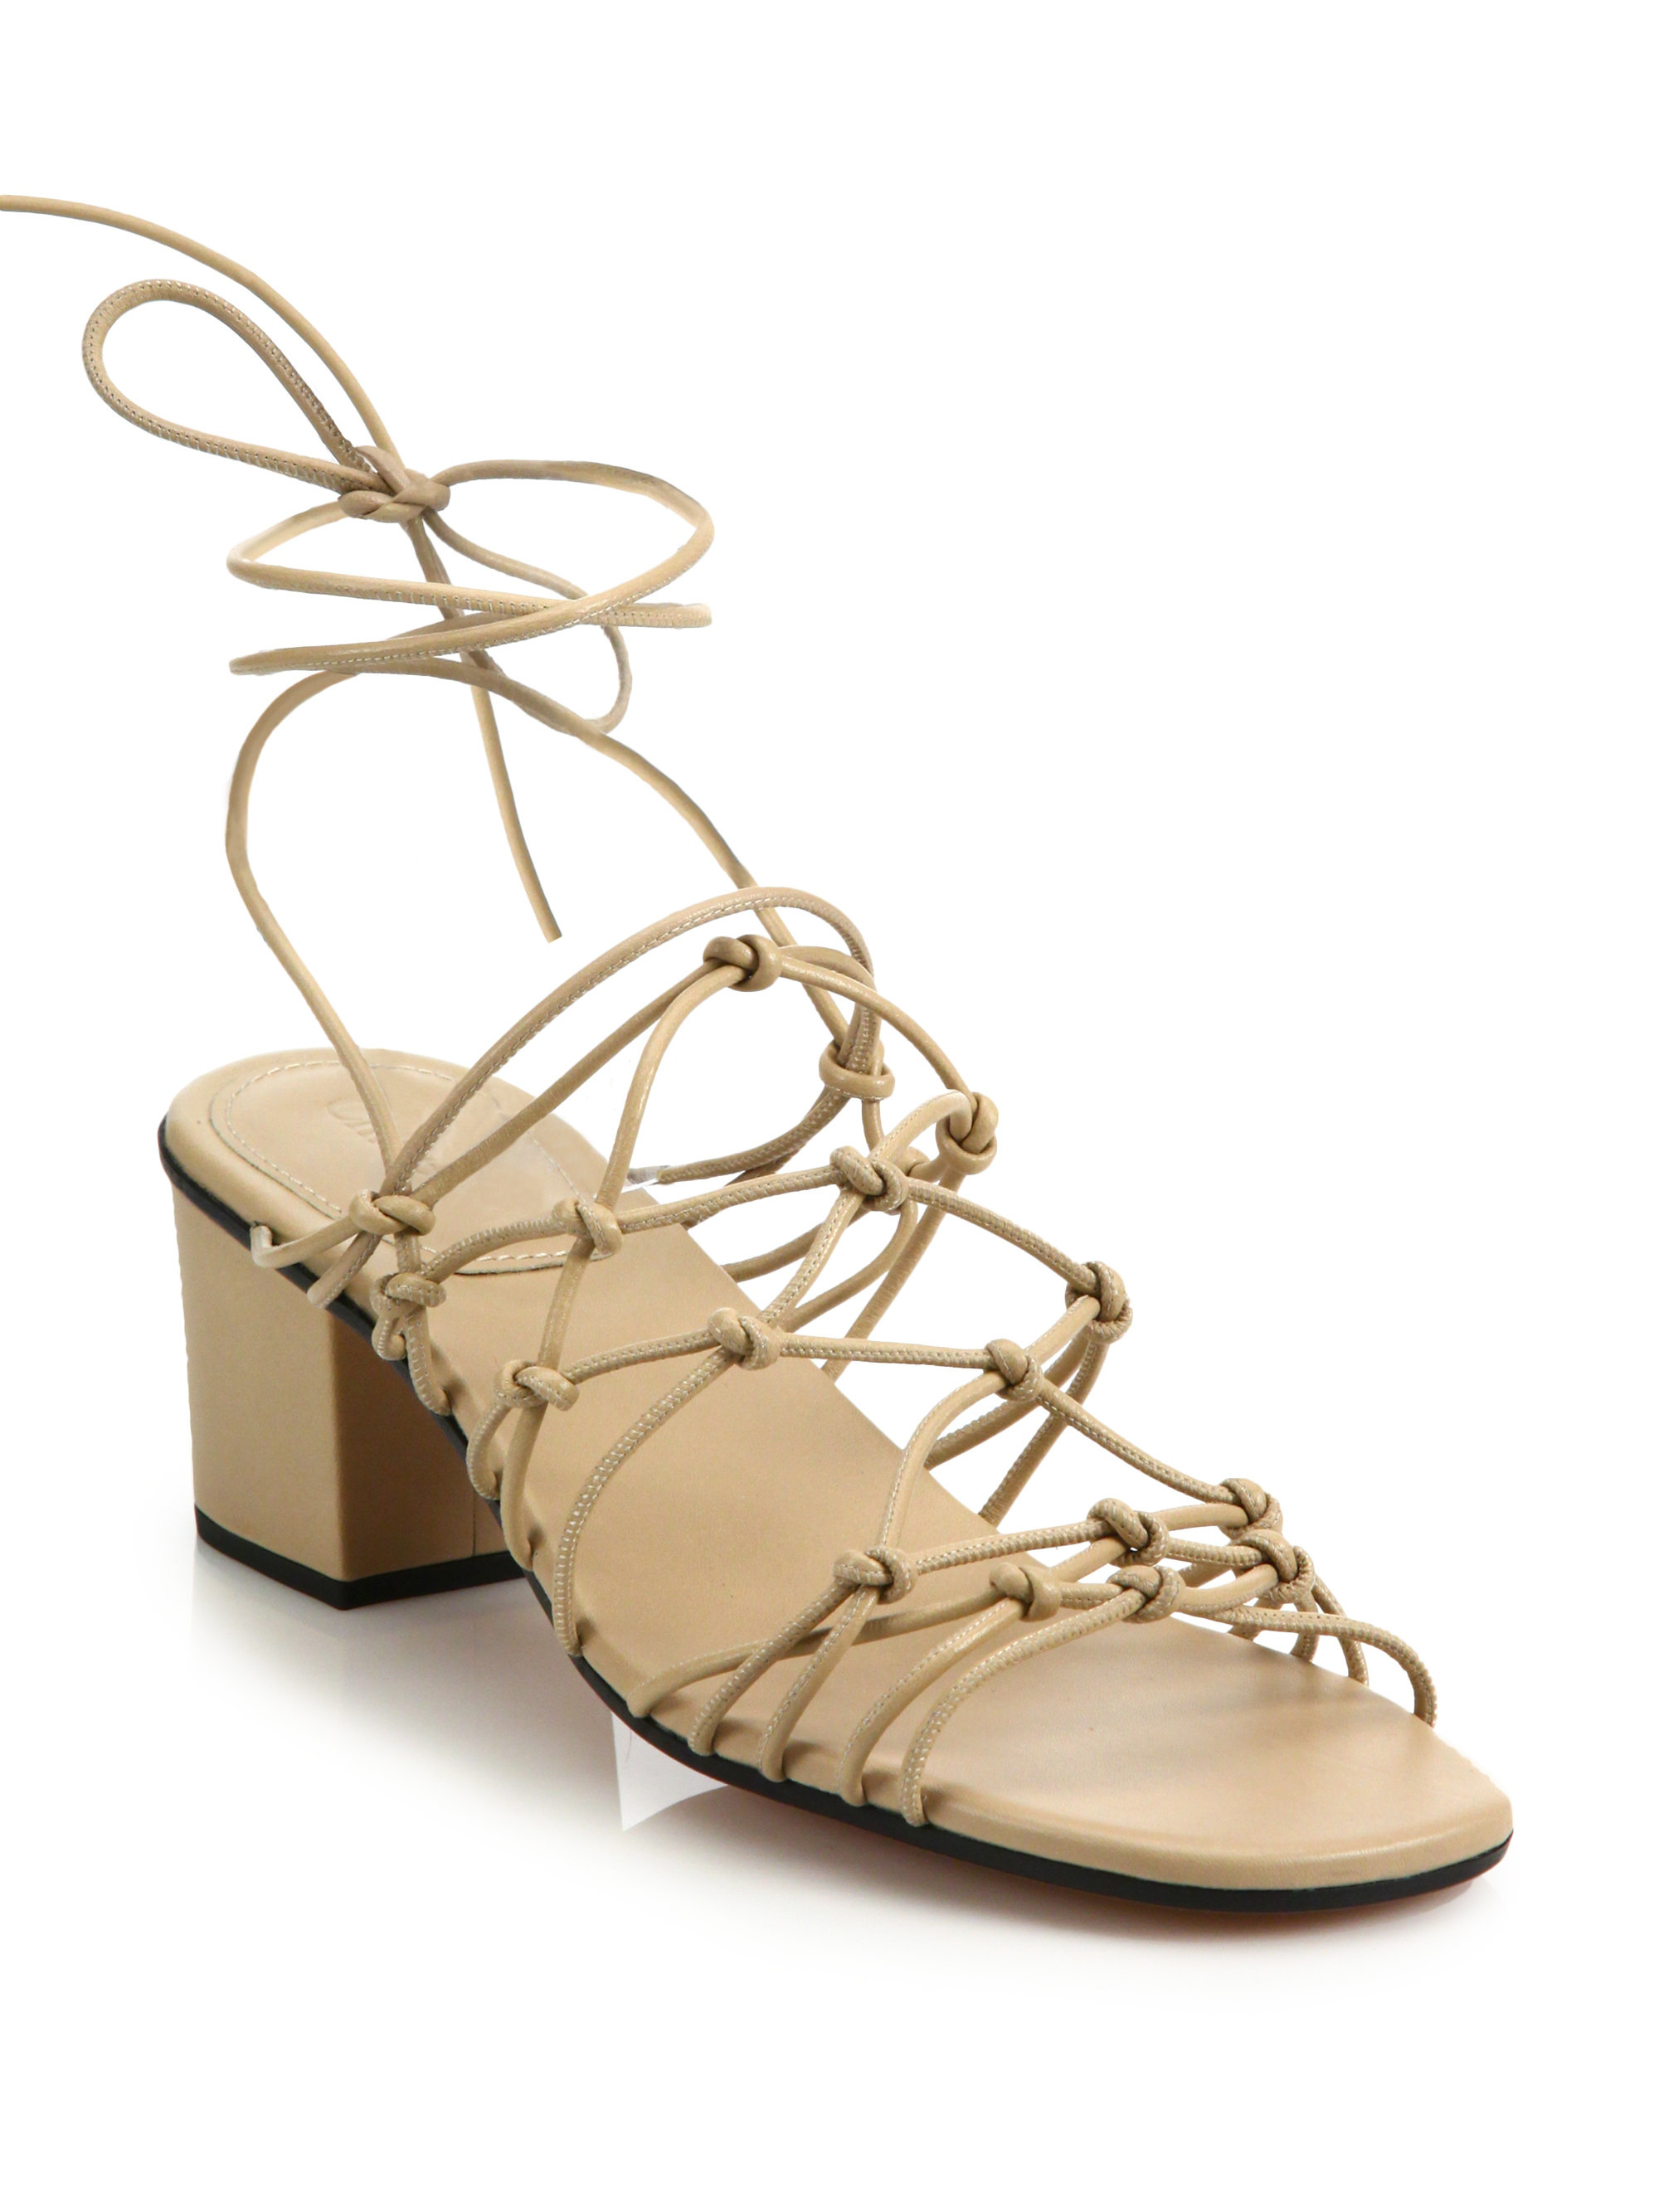 fa5b1f3c1a2 Lyst - Chloé Knotted Leather Lace-up Block-heel Sandals in Natural